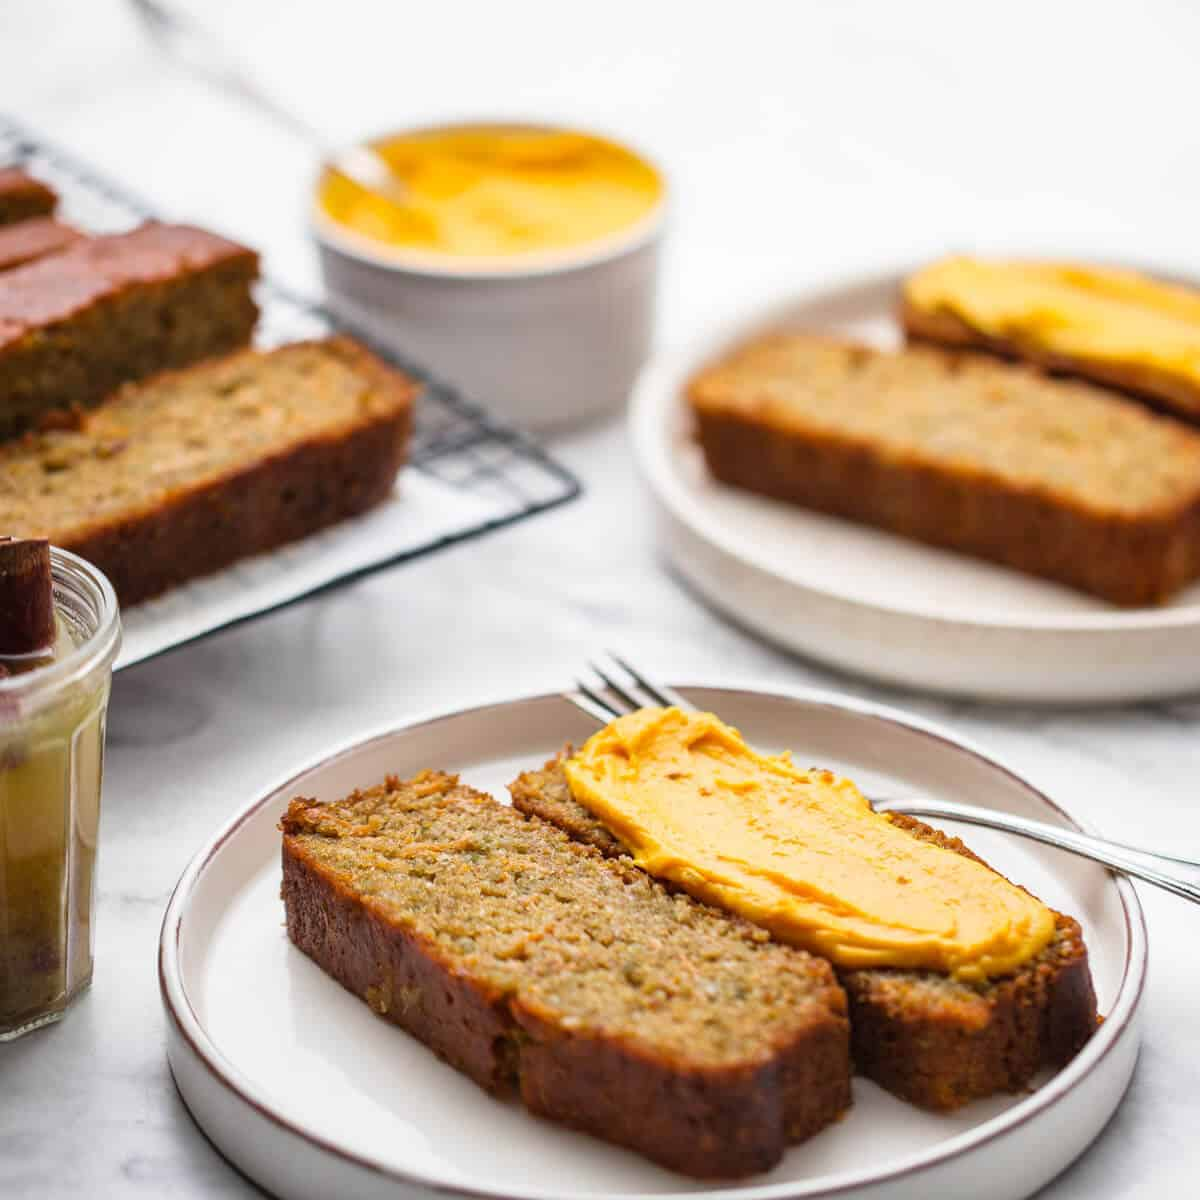 pumpkin cake with syrup and cream cheese spread